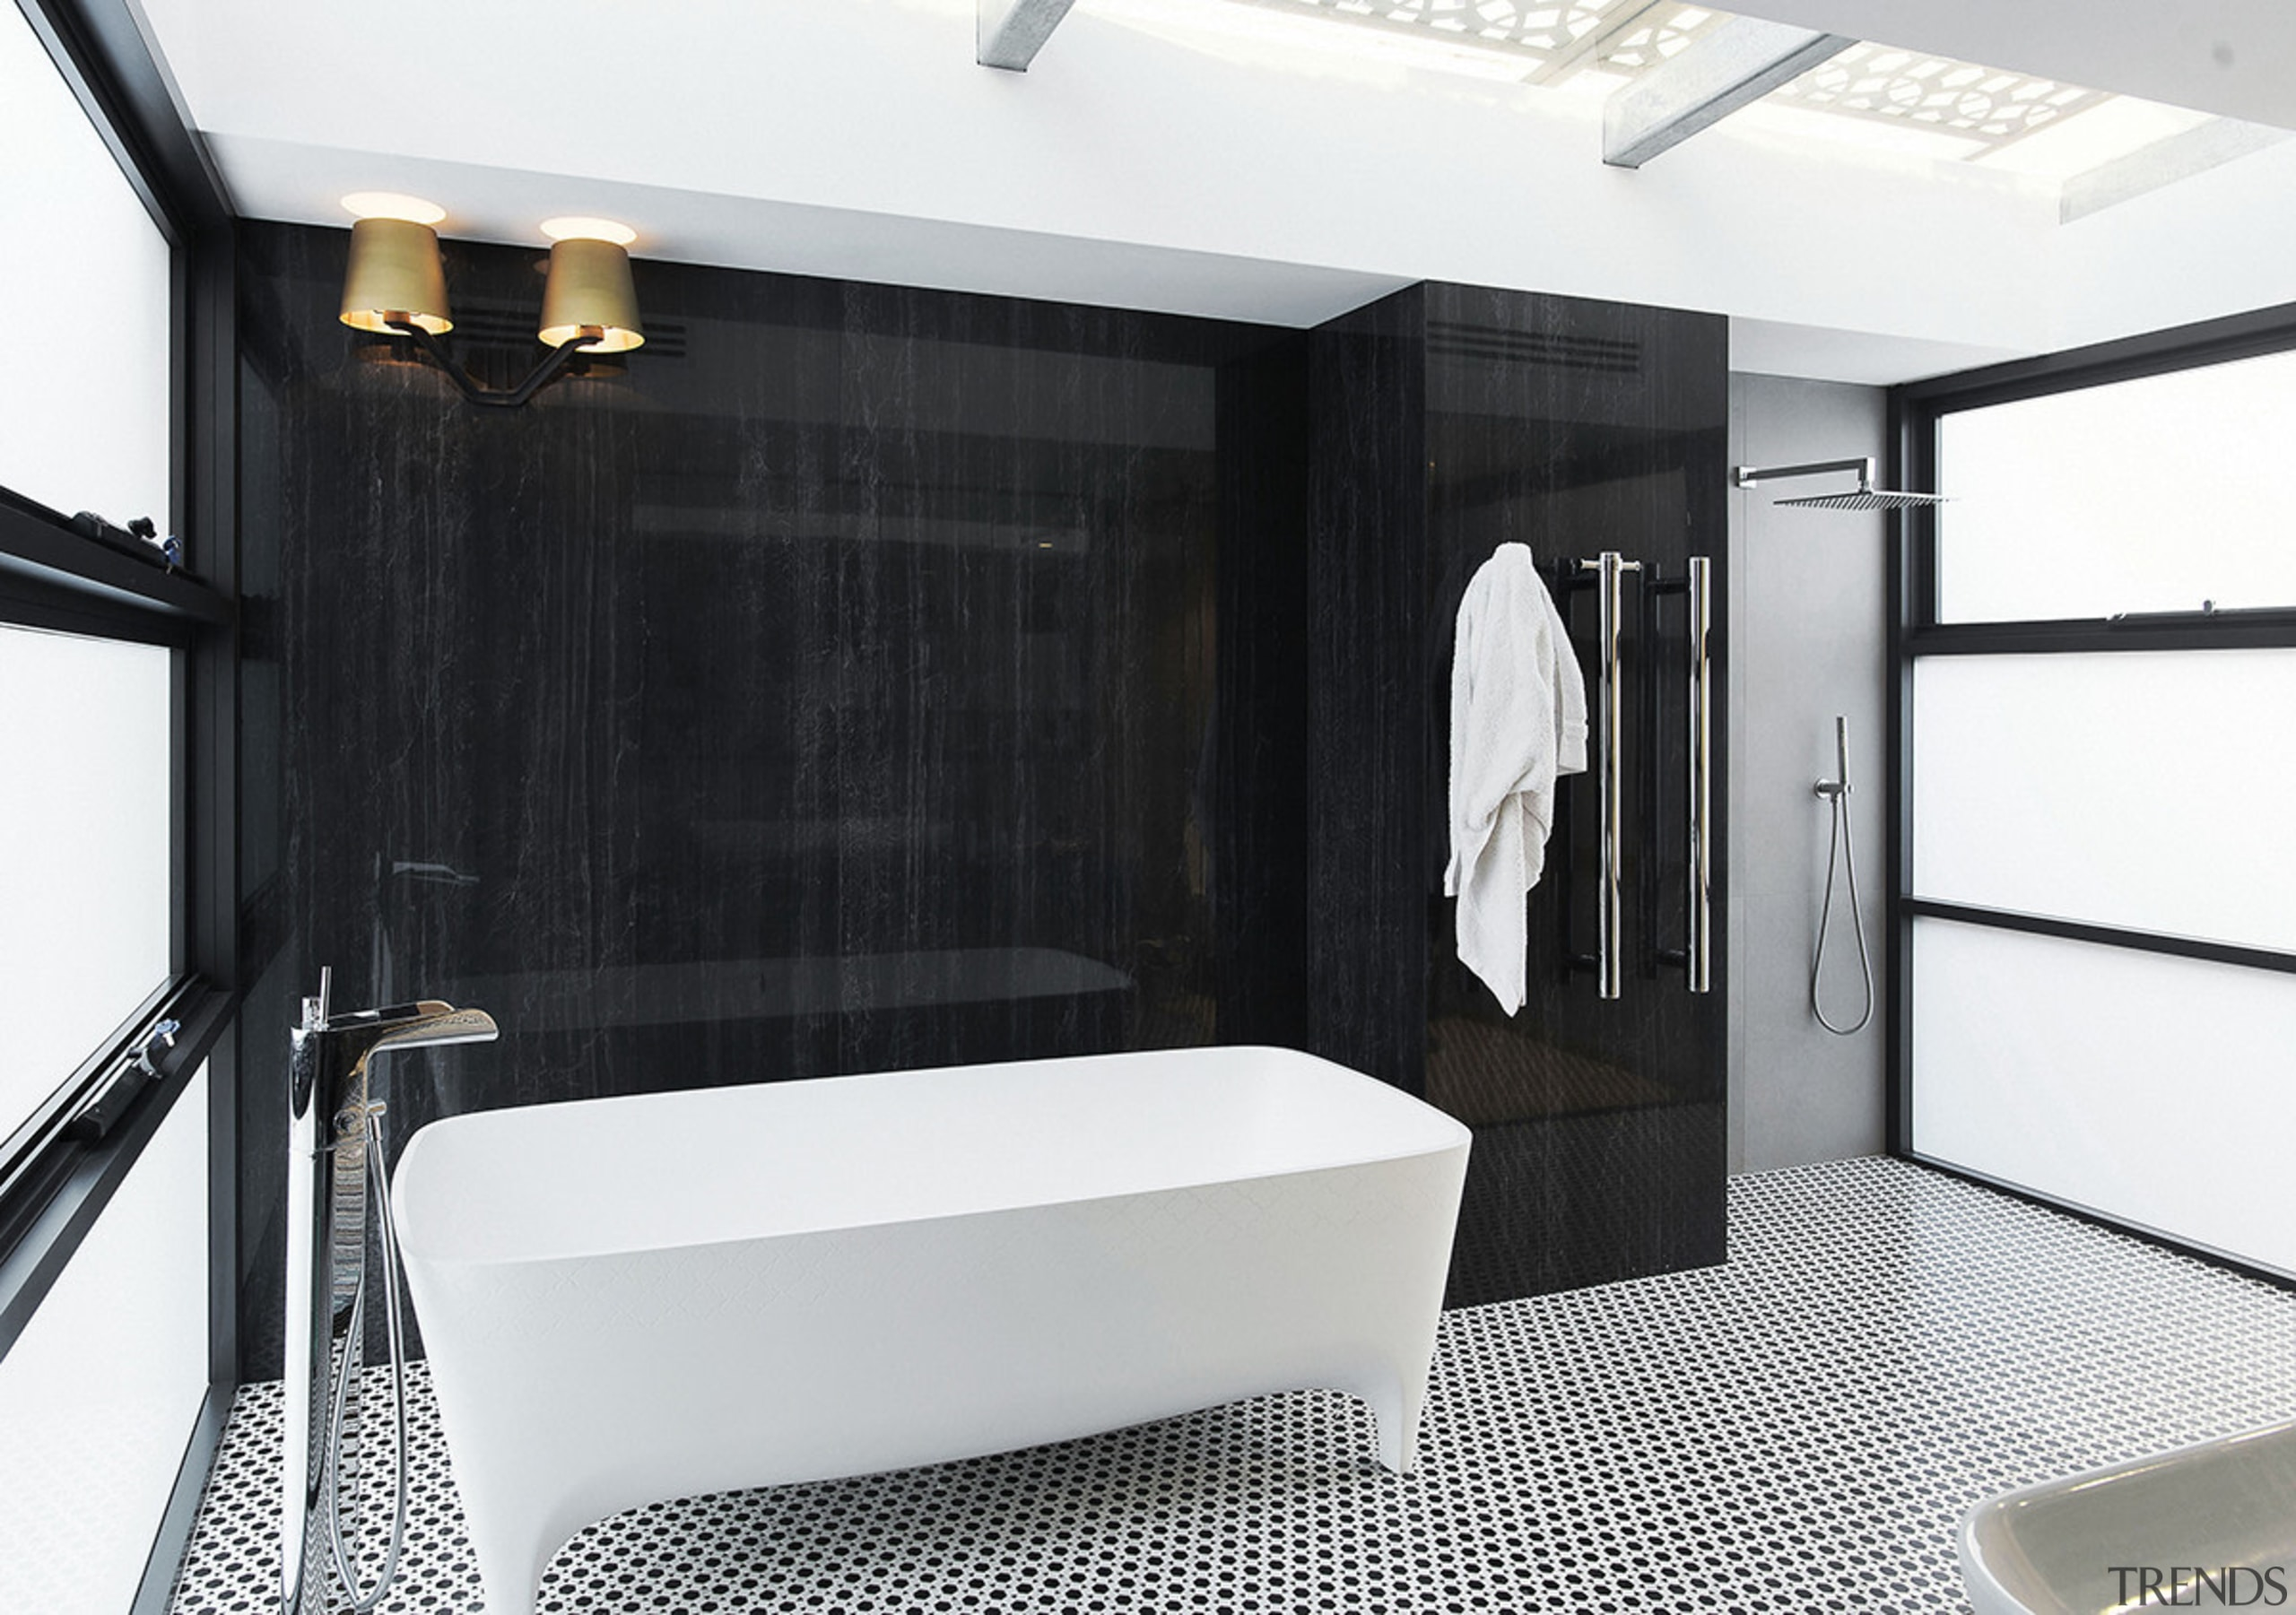 Large porcelain panels create a wood-look feature surface bathroom, floor, interior design, room, white, black, porcelain panels, towel rail, sconces